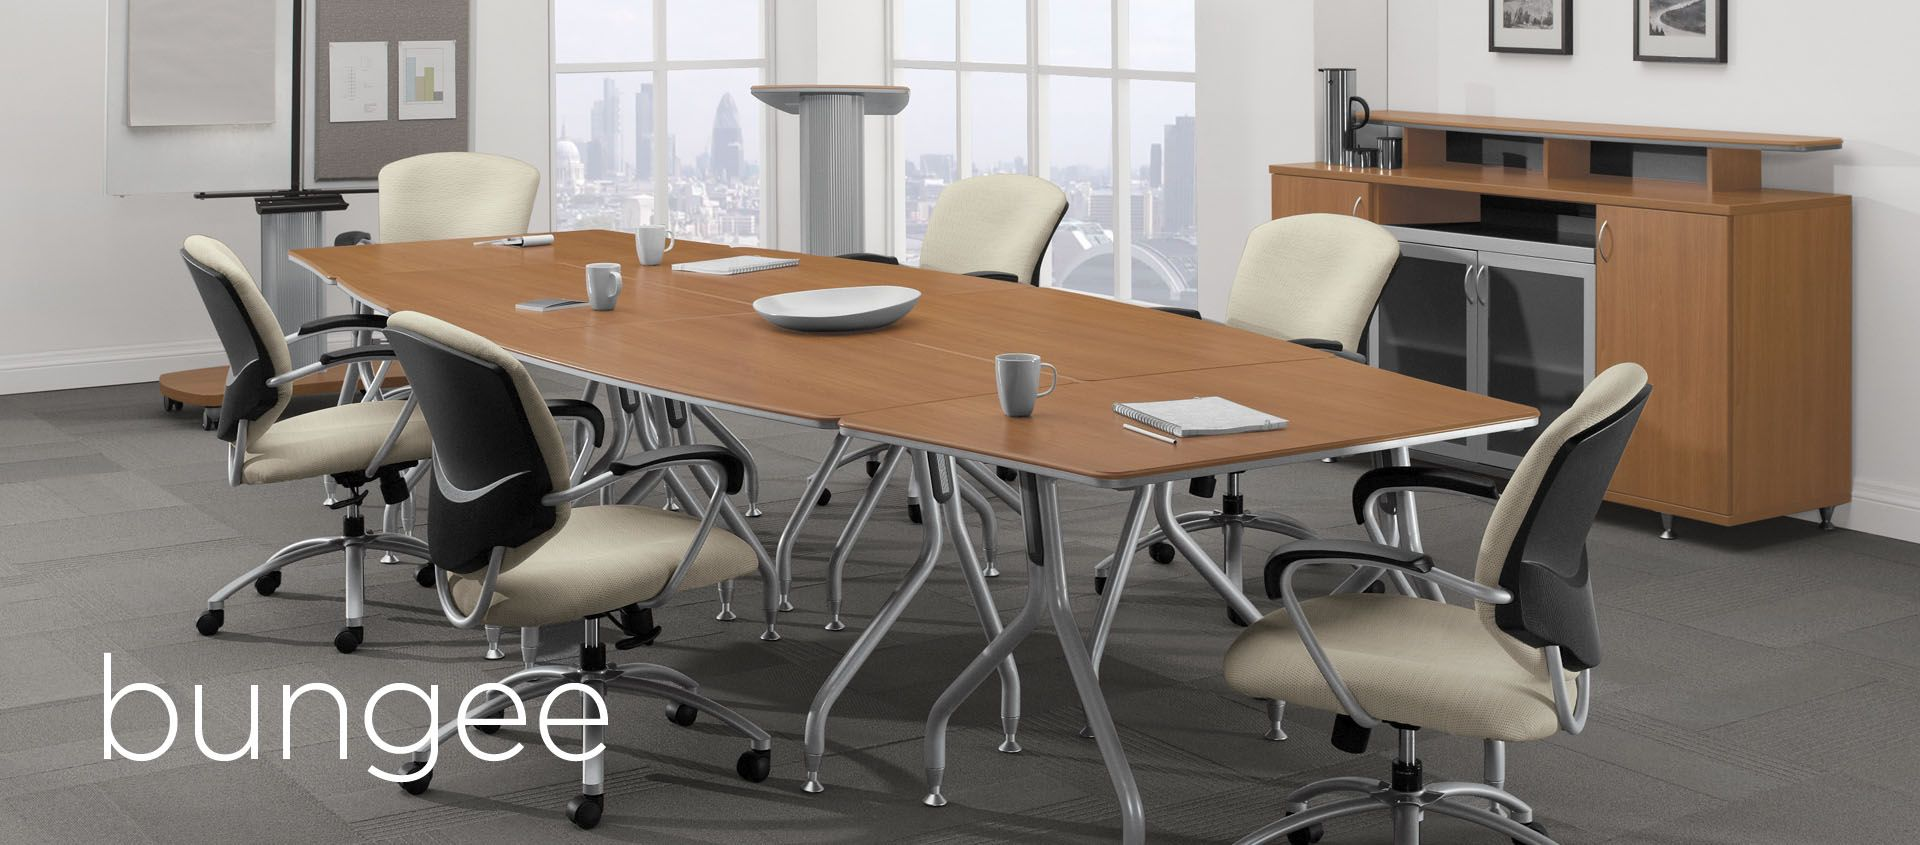 Bungee Tables Hero may be conference table from Palo